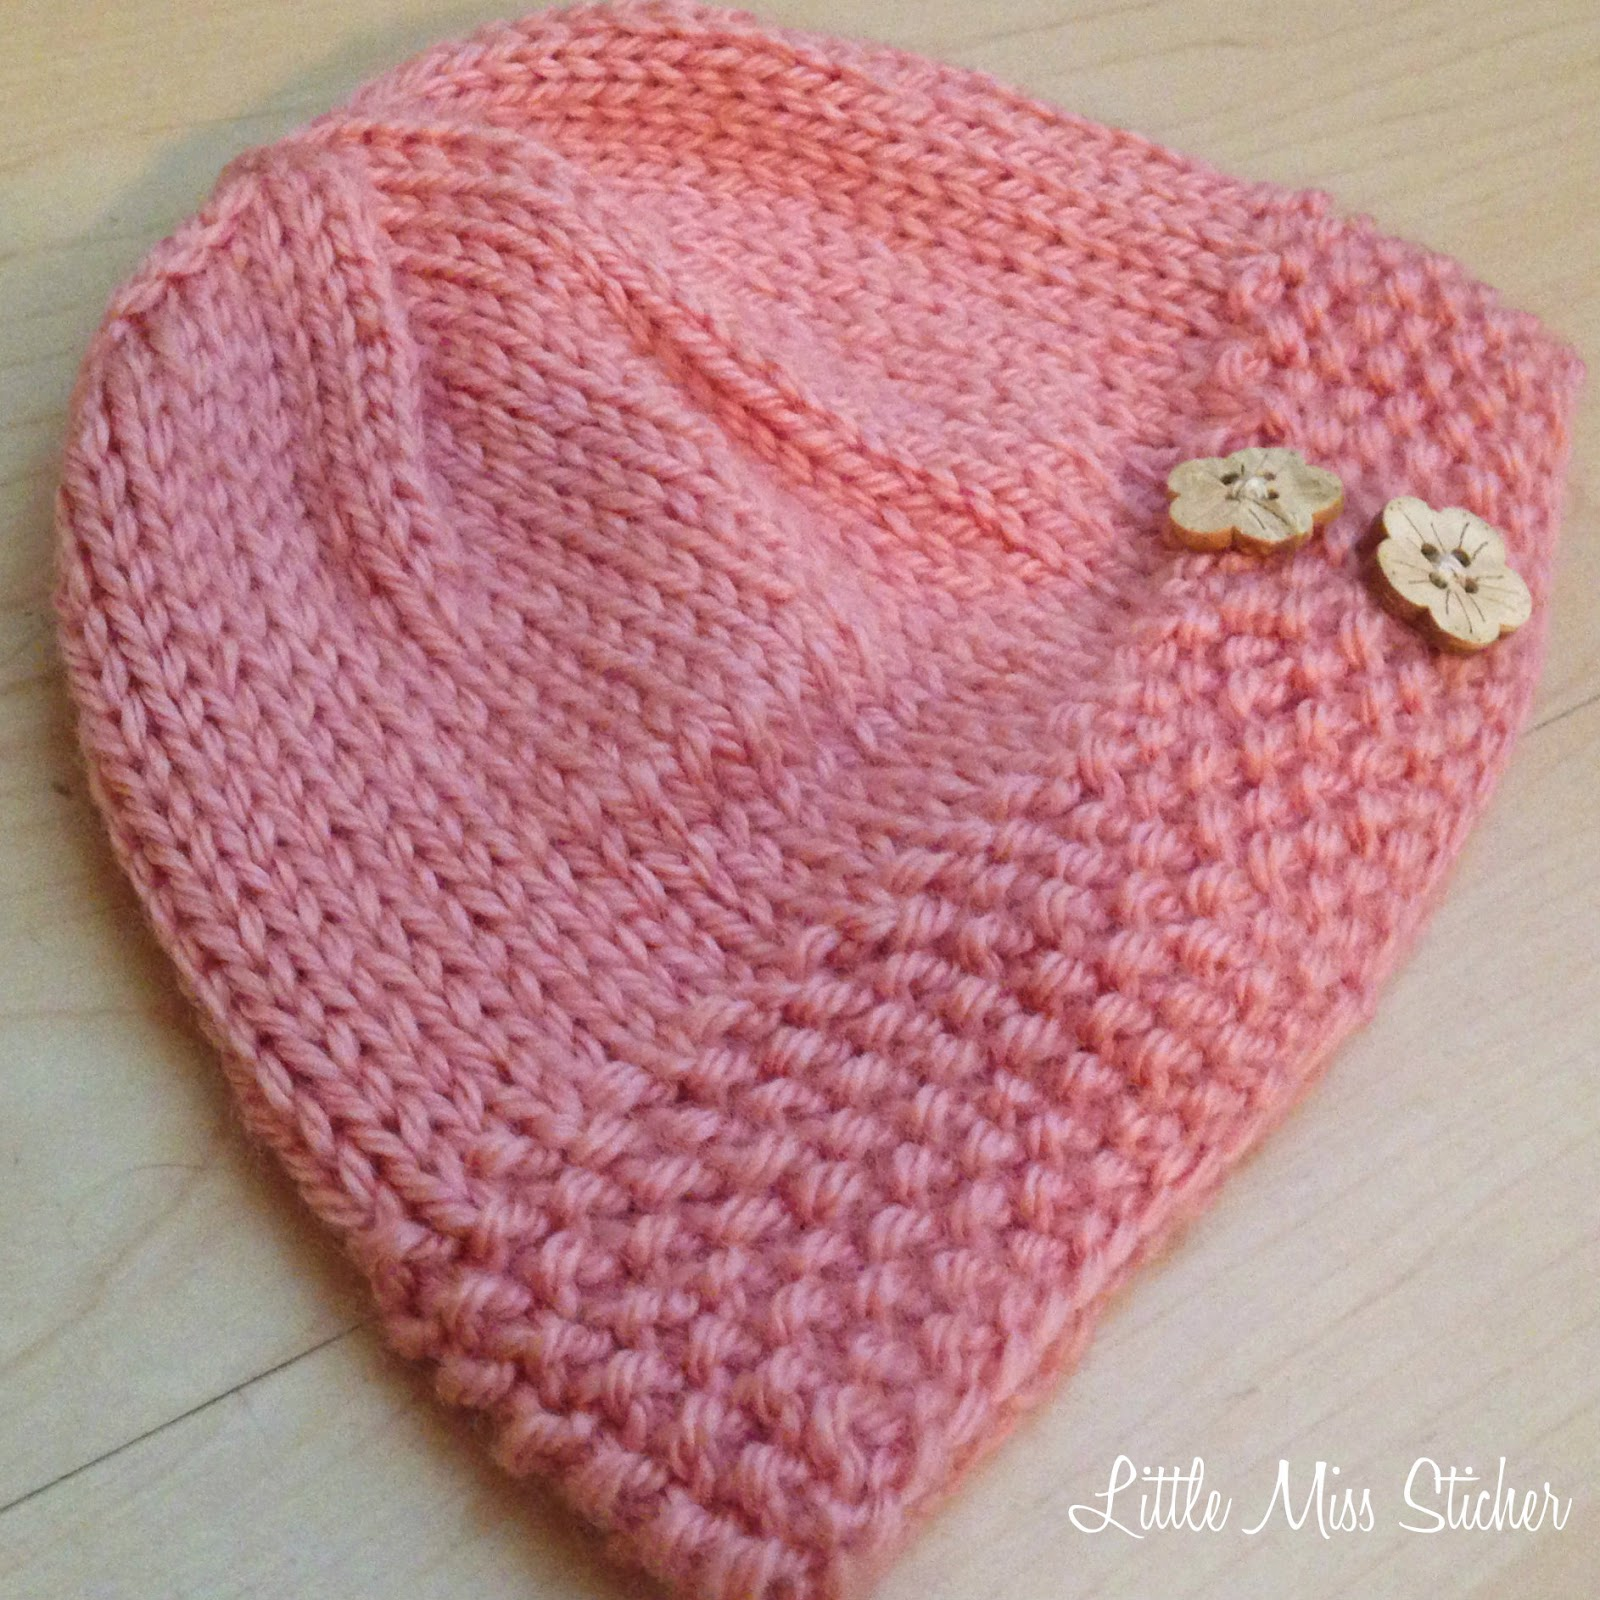 Free Knit Beanie Pattern : Little Miss Stitcher: Bitty Beanie Free Knit Pattern